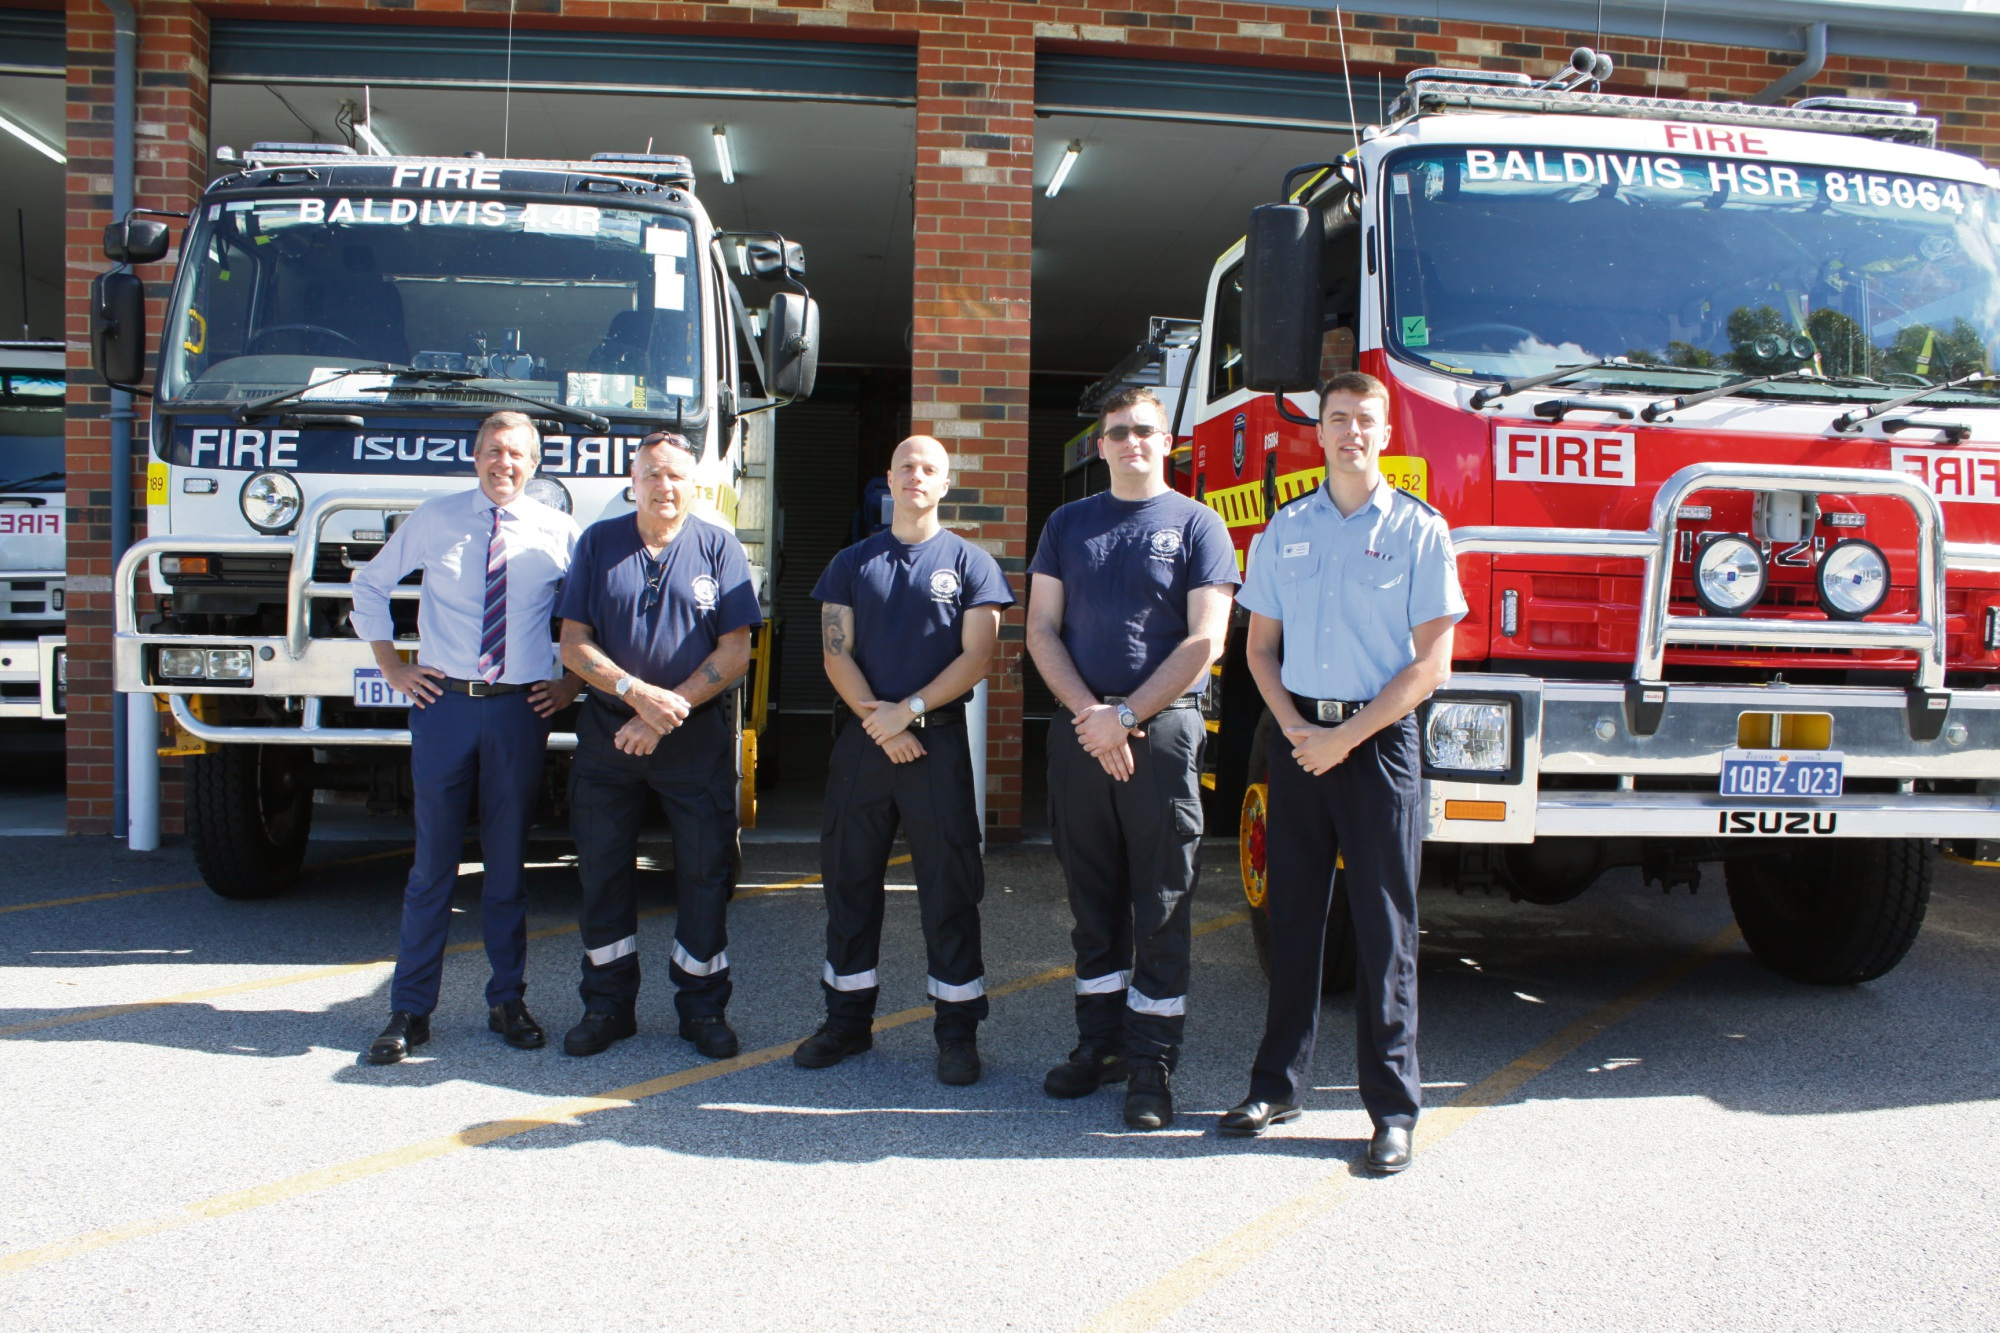 Baldivis MLA Reece Whitby with firefighters Graham Oliver, Aaron Higgins, Lewis Ascough and Tyler Winter.